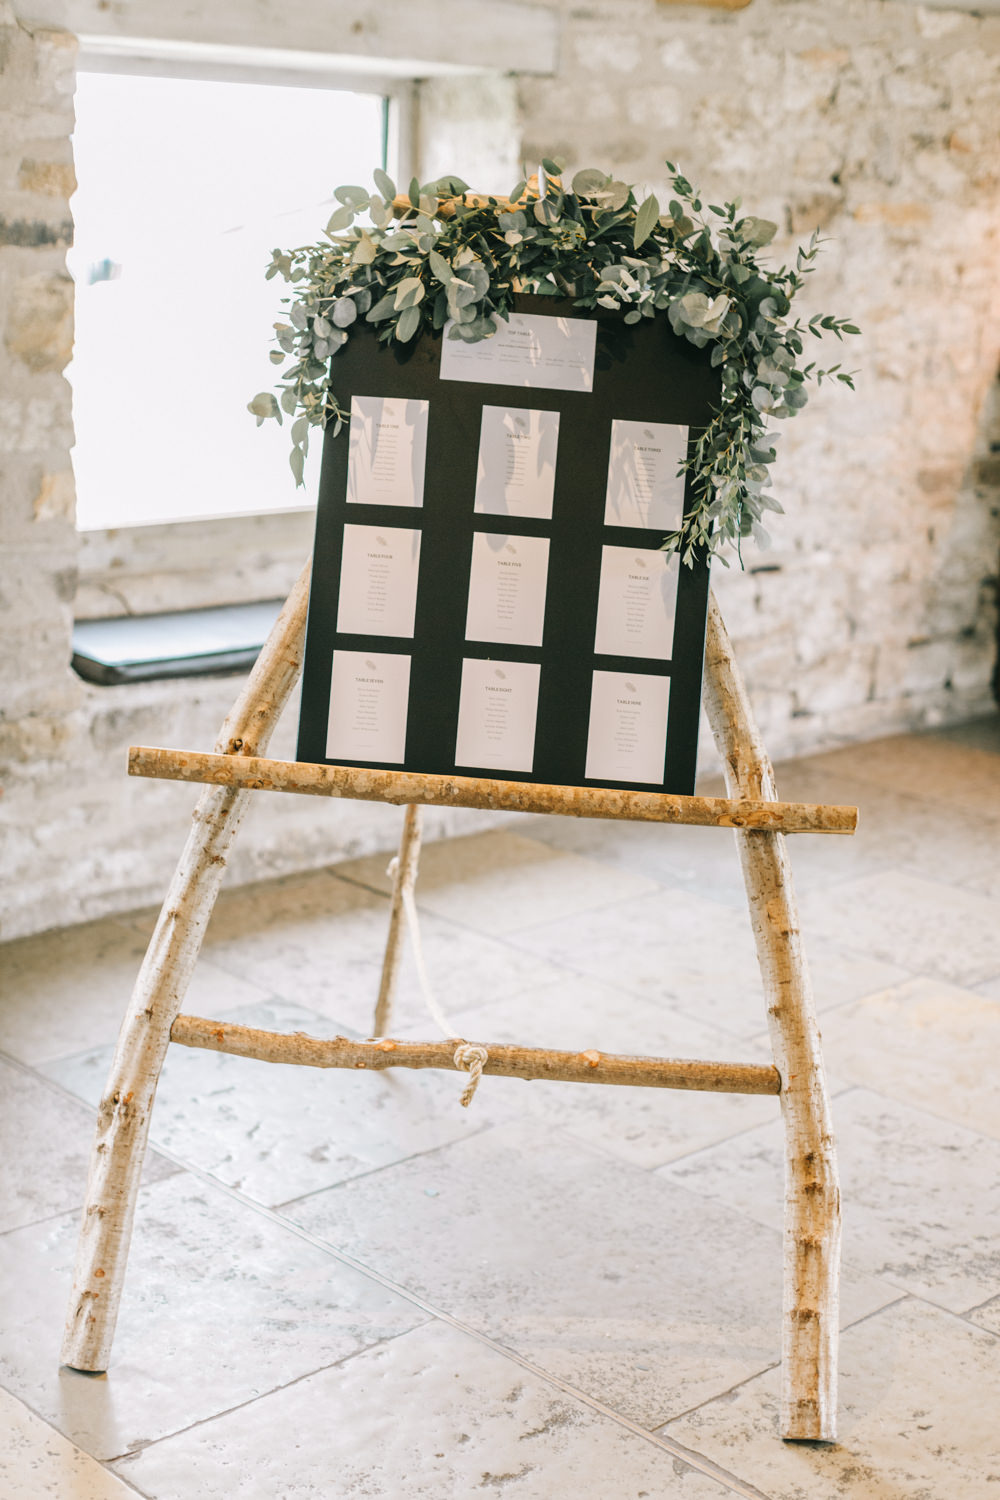 Table Plan Seating Chart Greenery Easel Foliage Flowers Healey Barn Wedding Amy Lou Photography